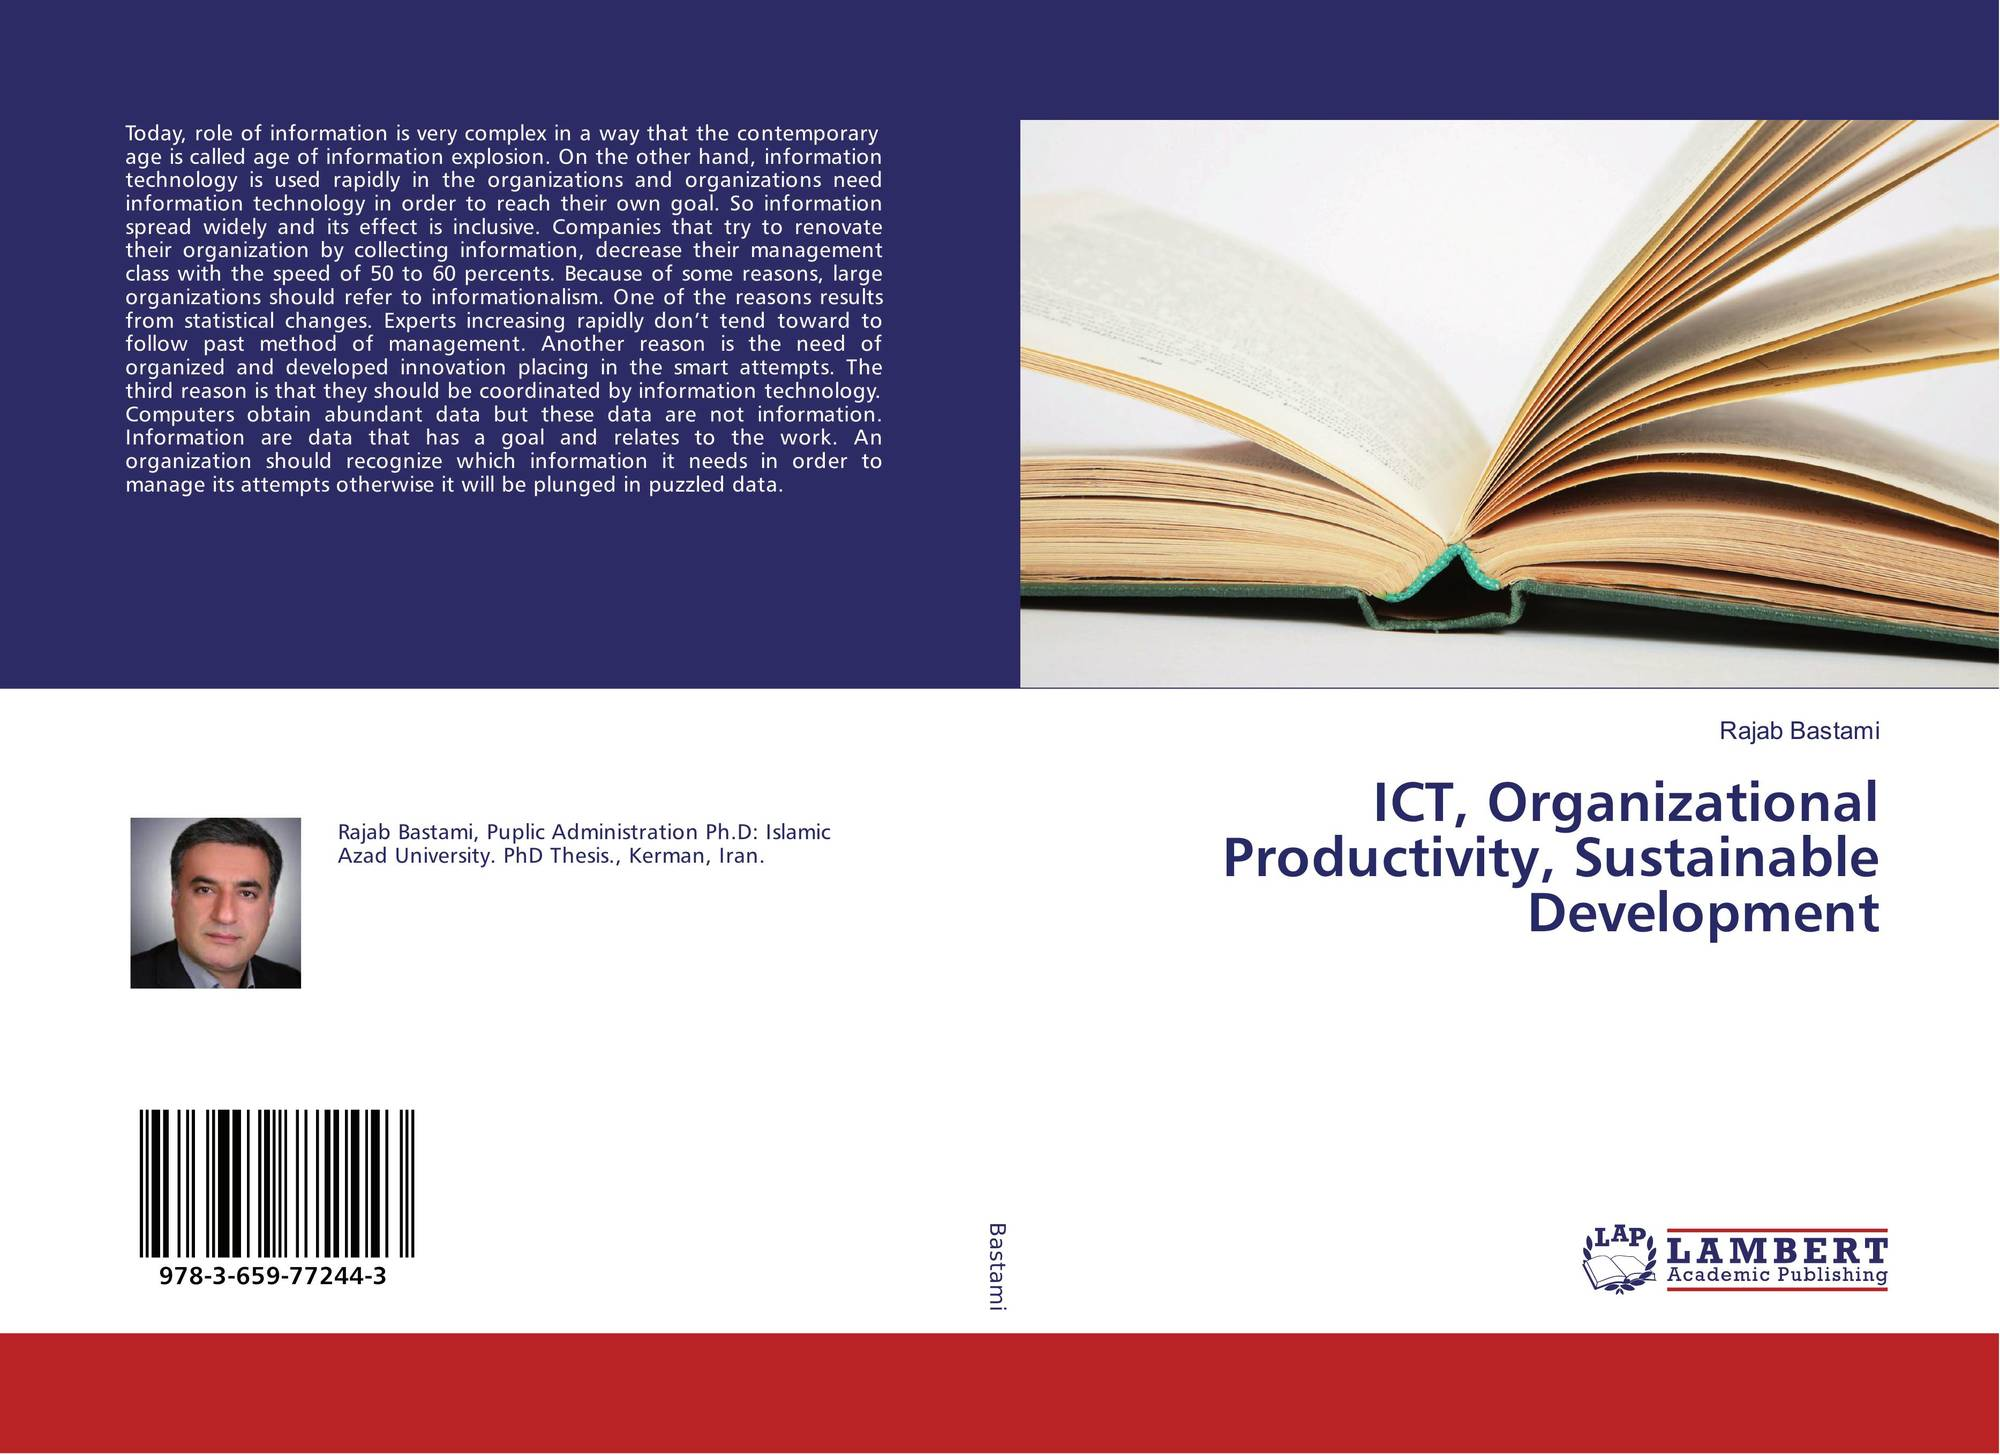 phd thesis on organizational development Prospective students searching for salary for a phd in organizational leadership found the such as a research thesis organizational development phd.